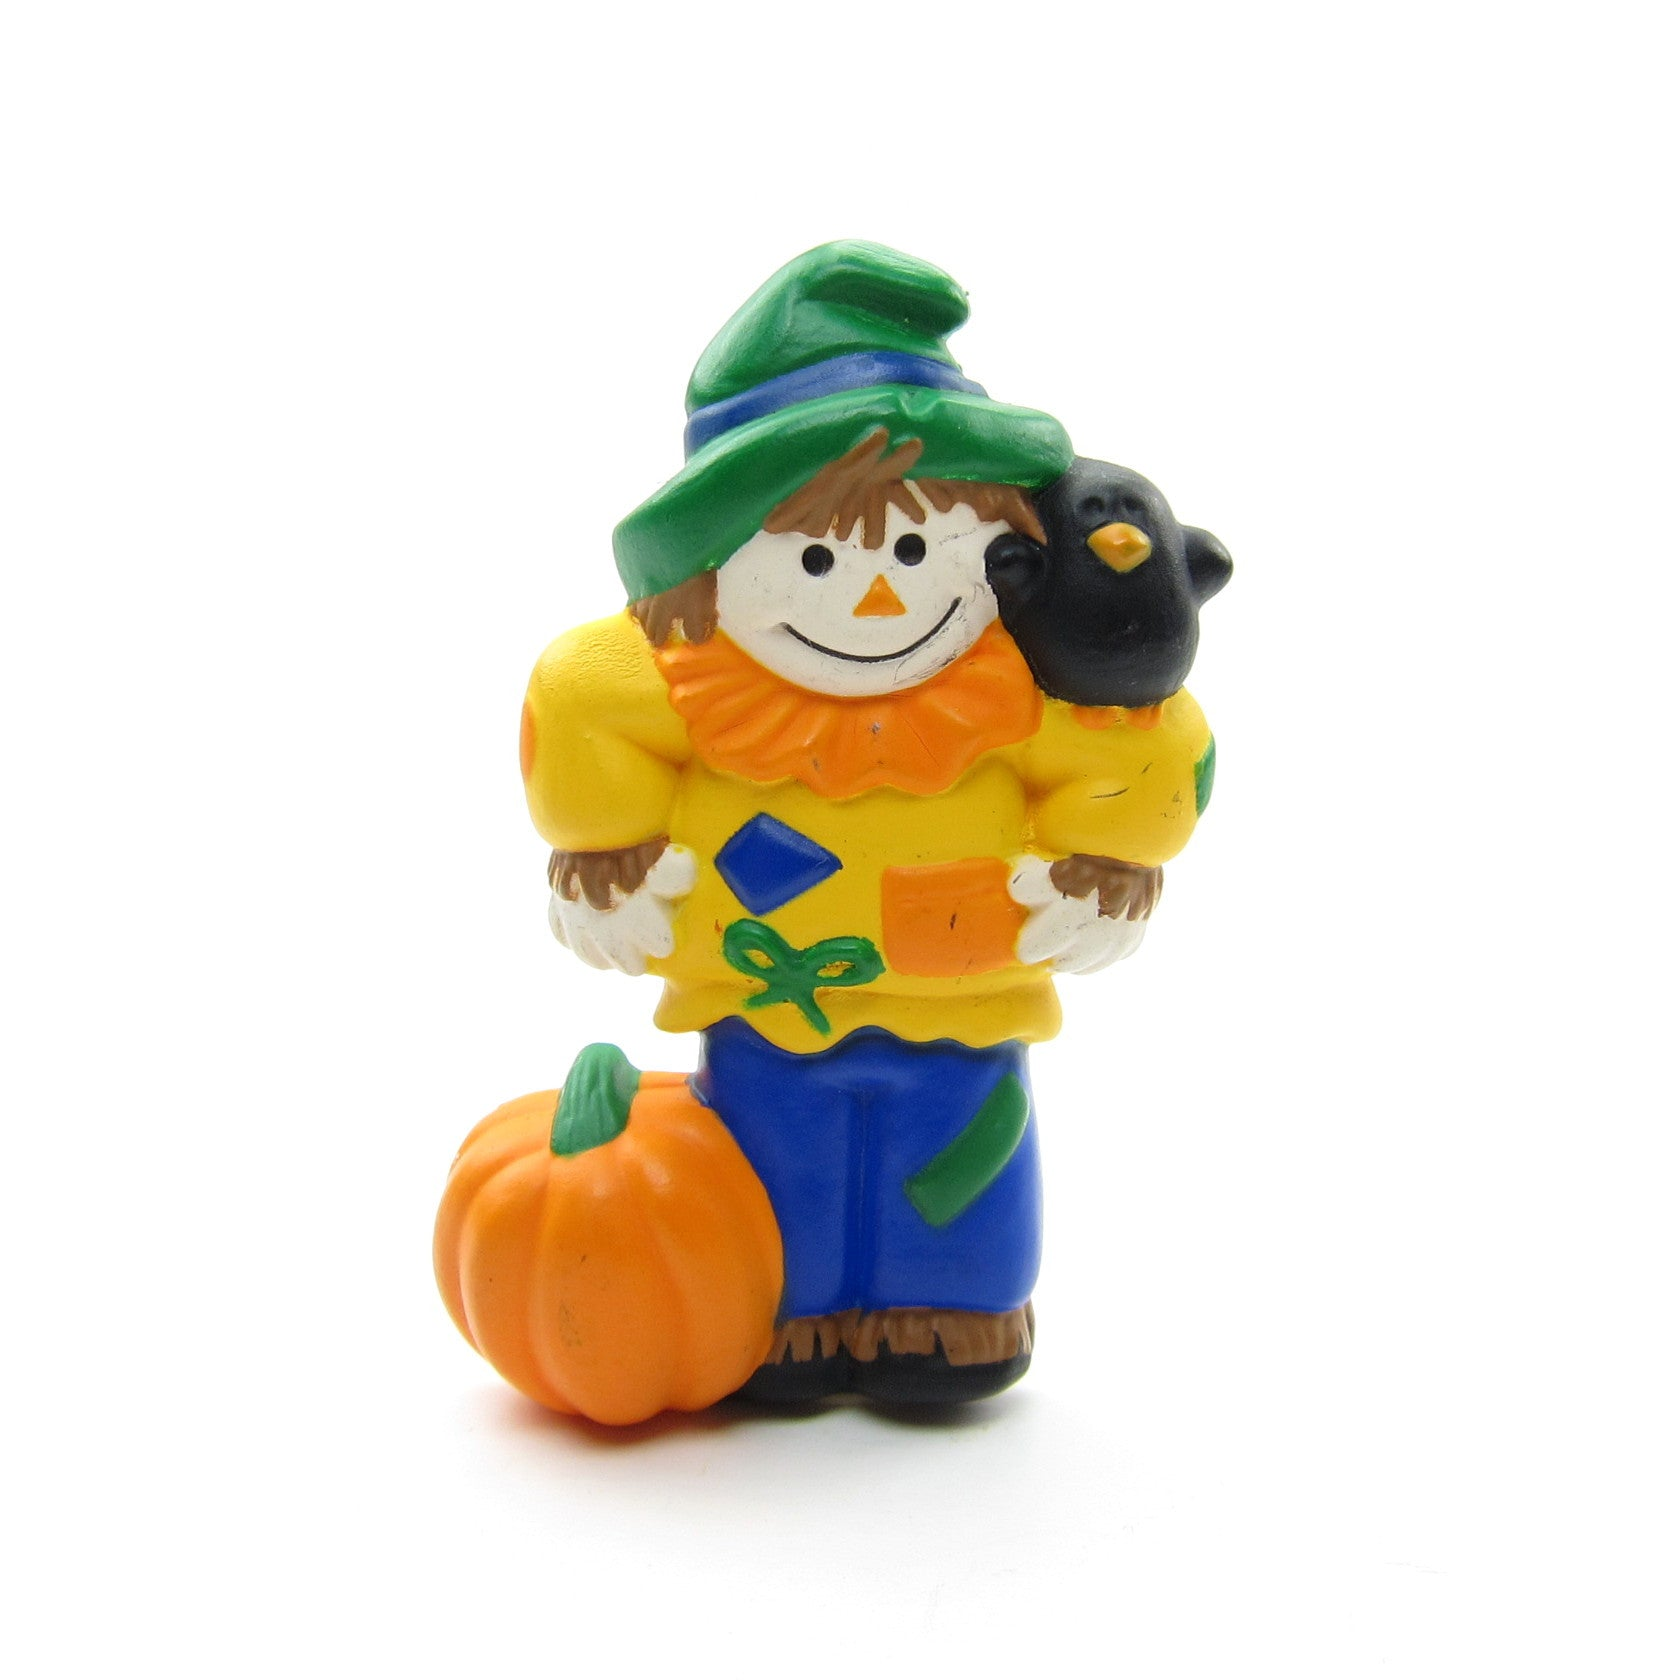 Hallmark scarecrow lapel pin with pumpkin and crow